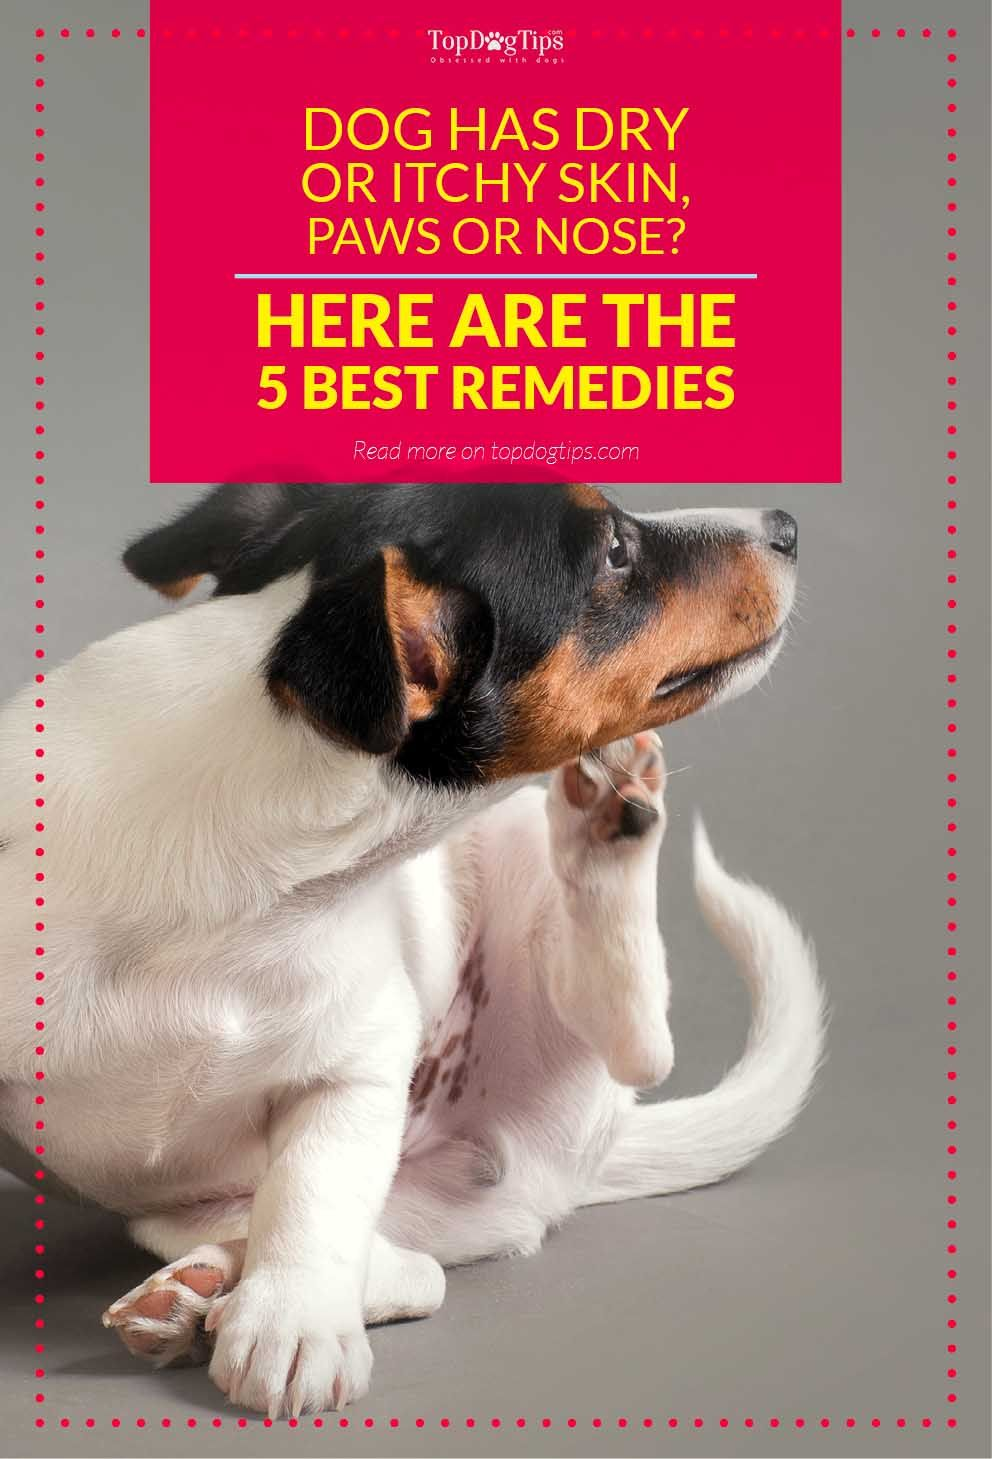 5 best remedies for dog's dry or itchy skin, paws and nose | best